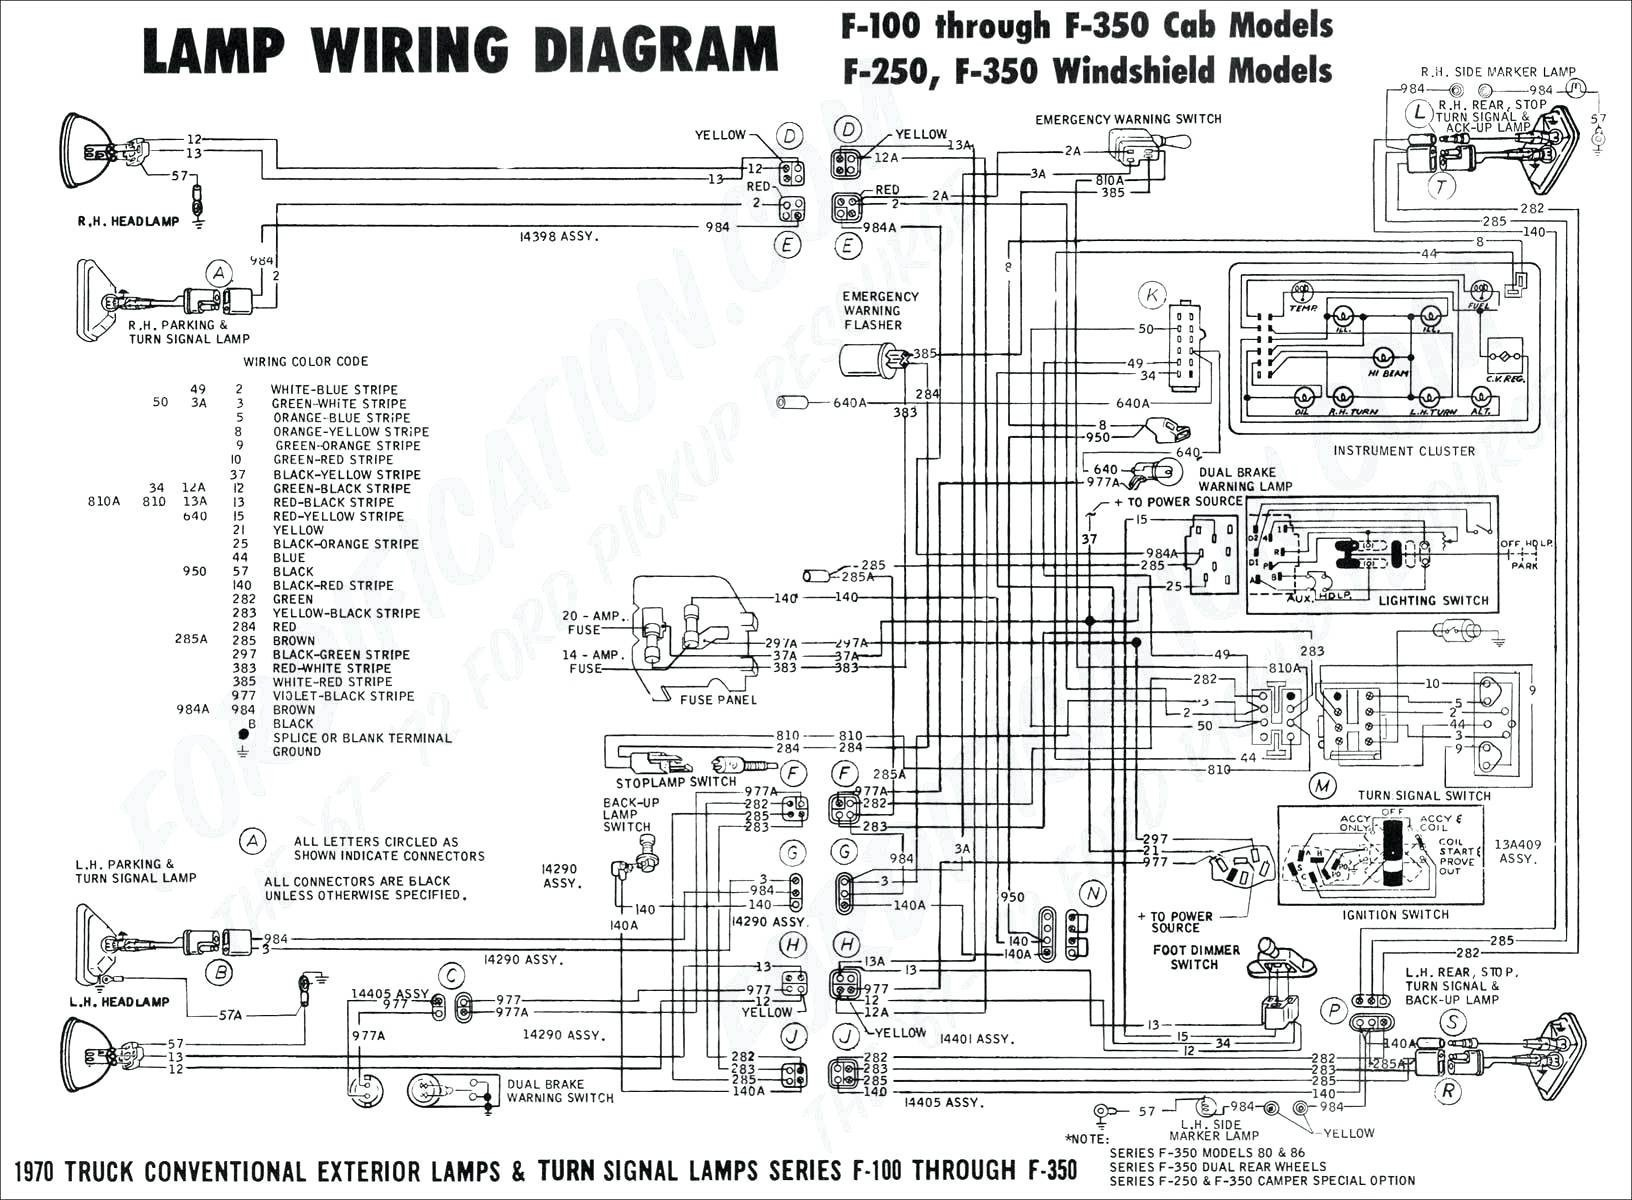 Wiring Photocell to Lighting Contactor Eaton atc 800 Wiring Diagram Contactor Wiring Diagram A1 A2 Of Wiring Photocell to Lighting Contactor Eaton atc 800 Wiring Diagram Contactor Wiring Diagram A1 A2